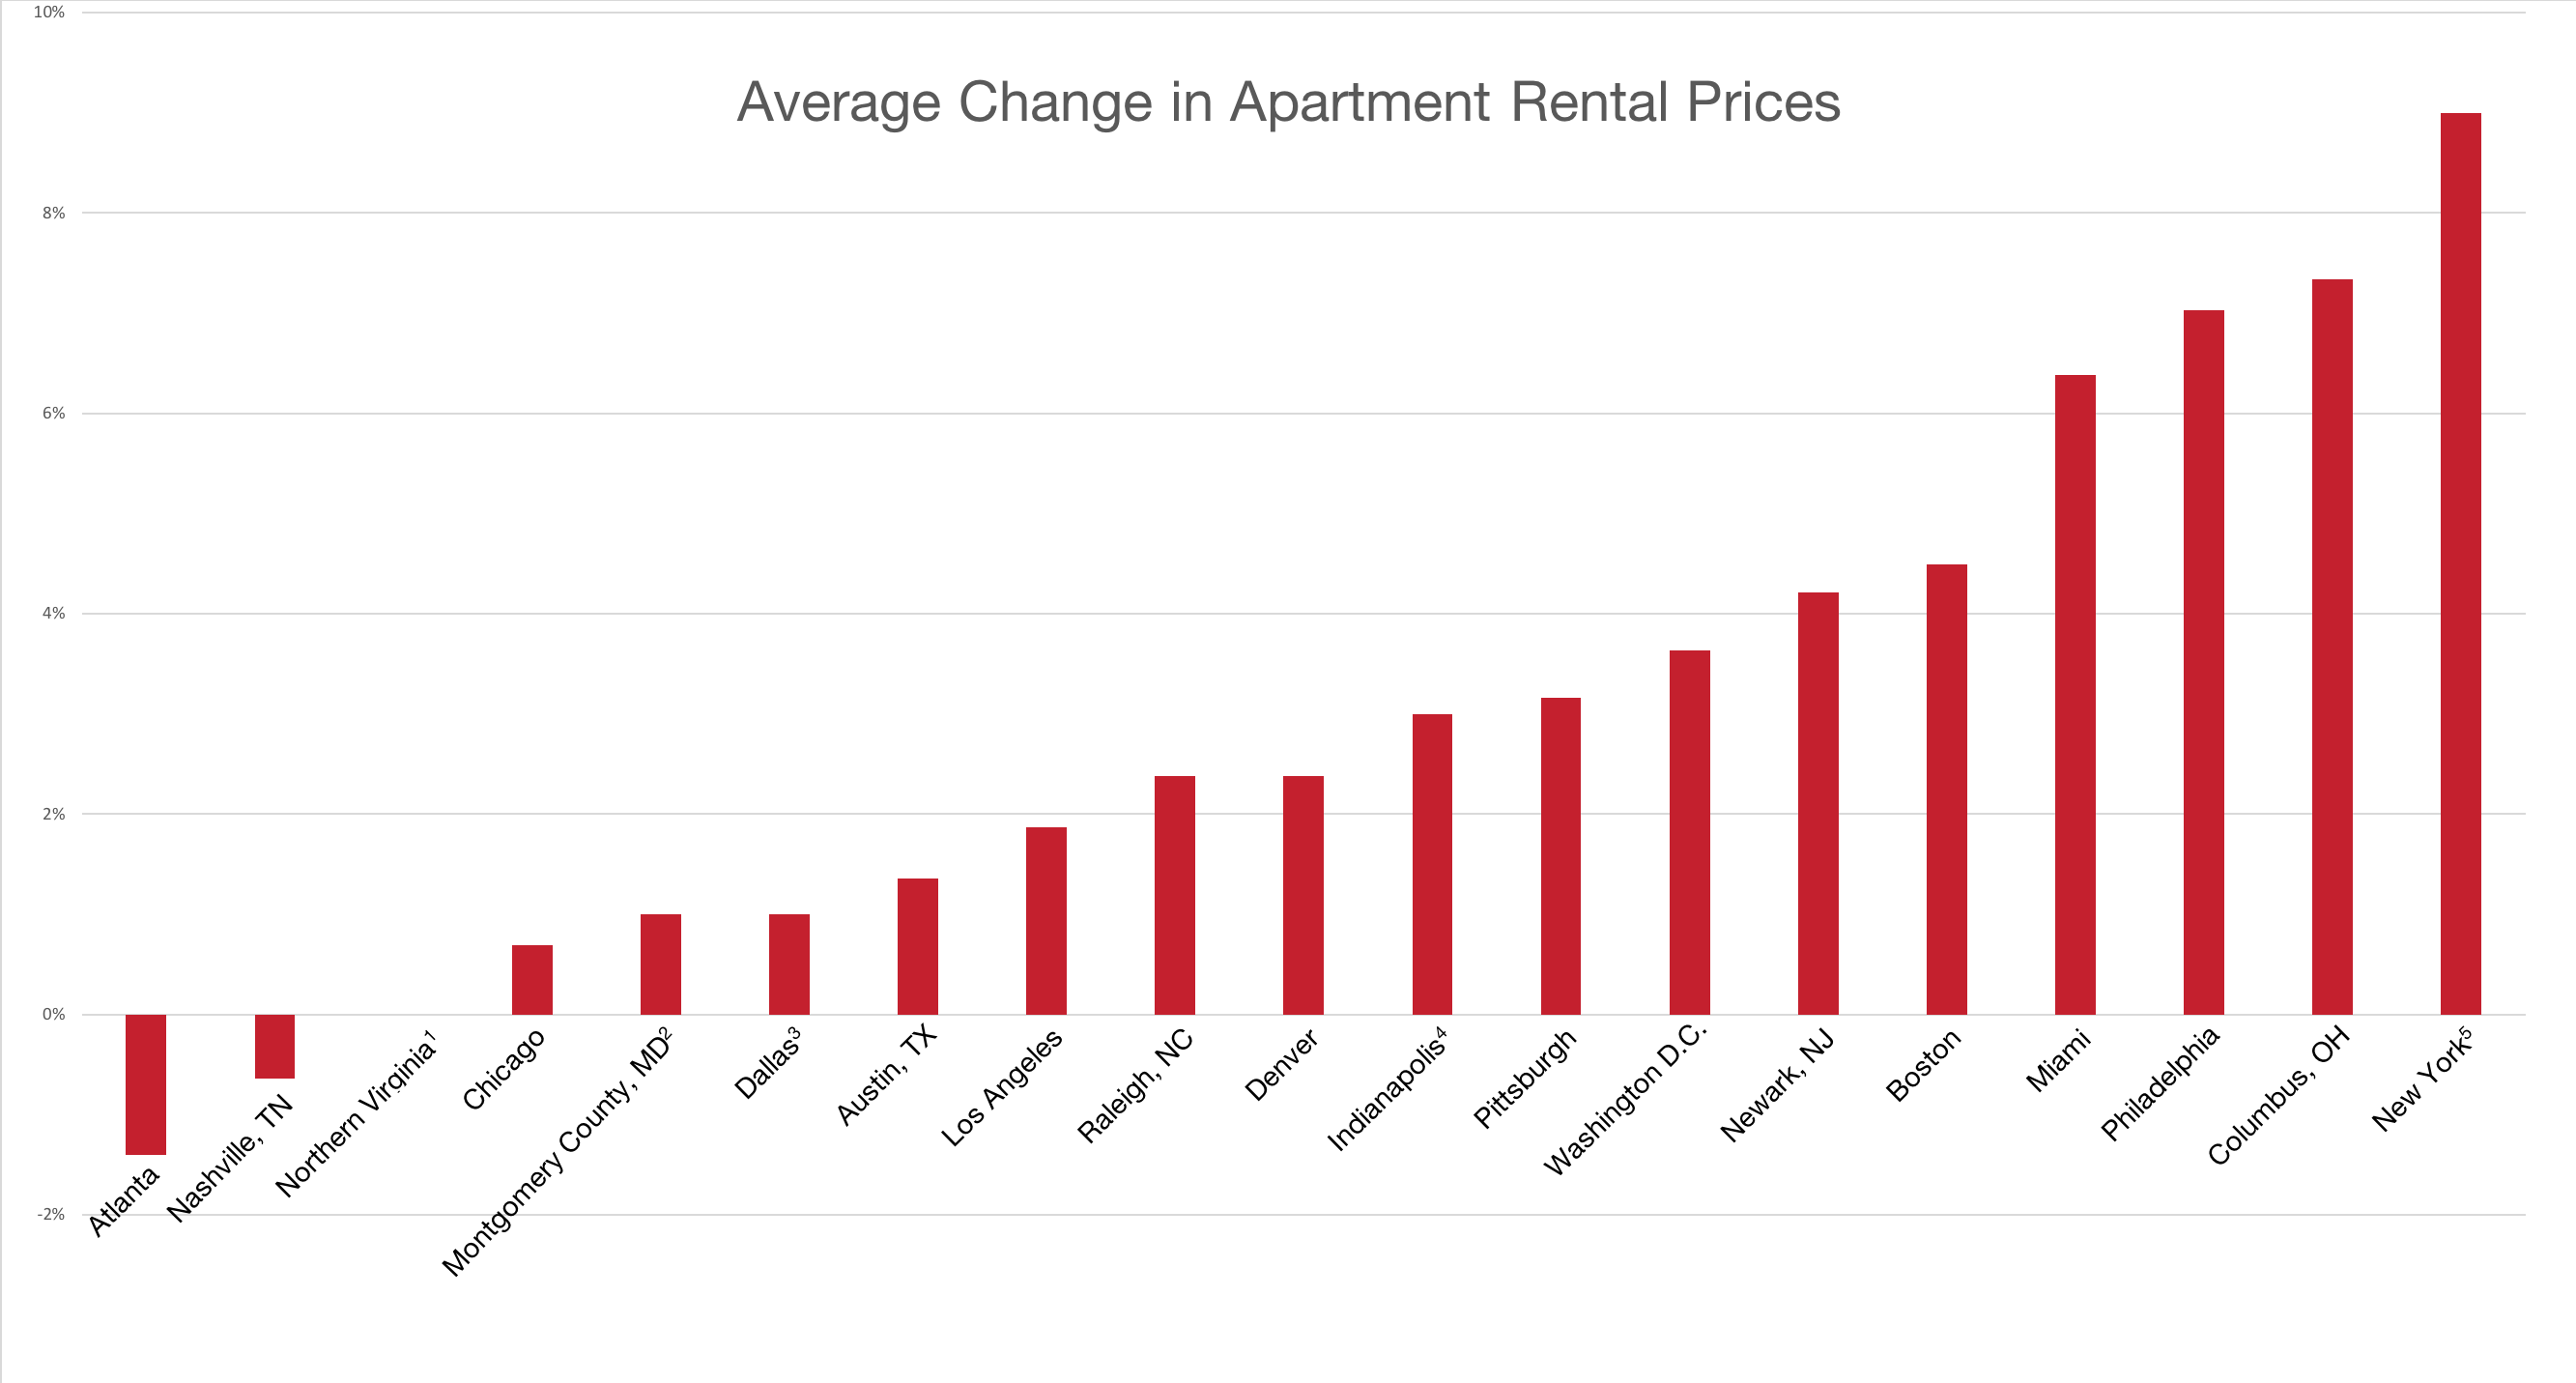 Apartment Al Price Changes In Hq2 Finalist Cities